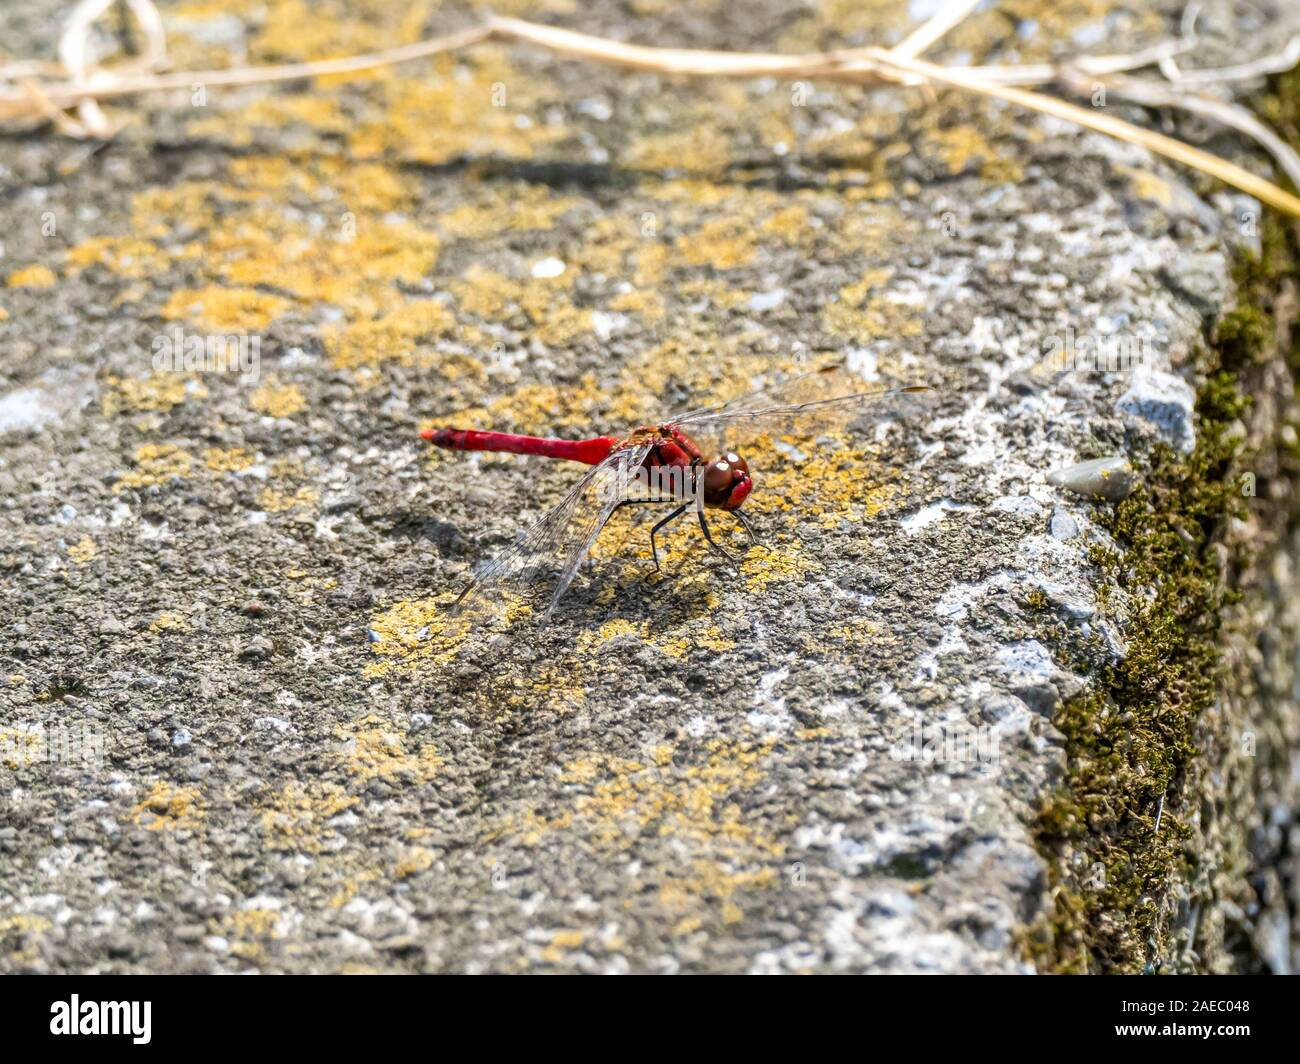 A scarlet skimmer dragonfly, Crocothemis servilia, rests on the concrete divider between Japanese rice fields near Yokohama, Japan. Stock Photo